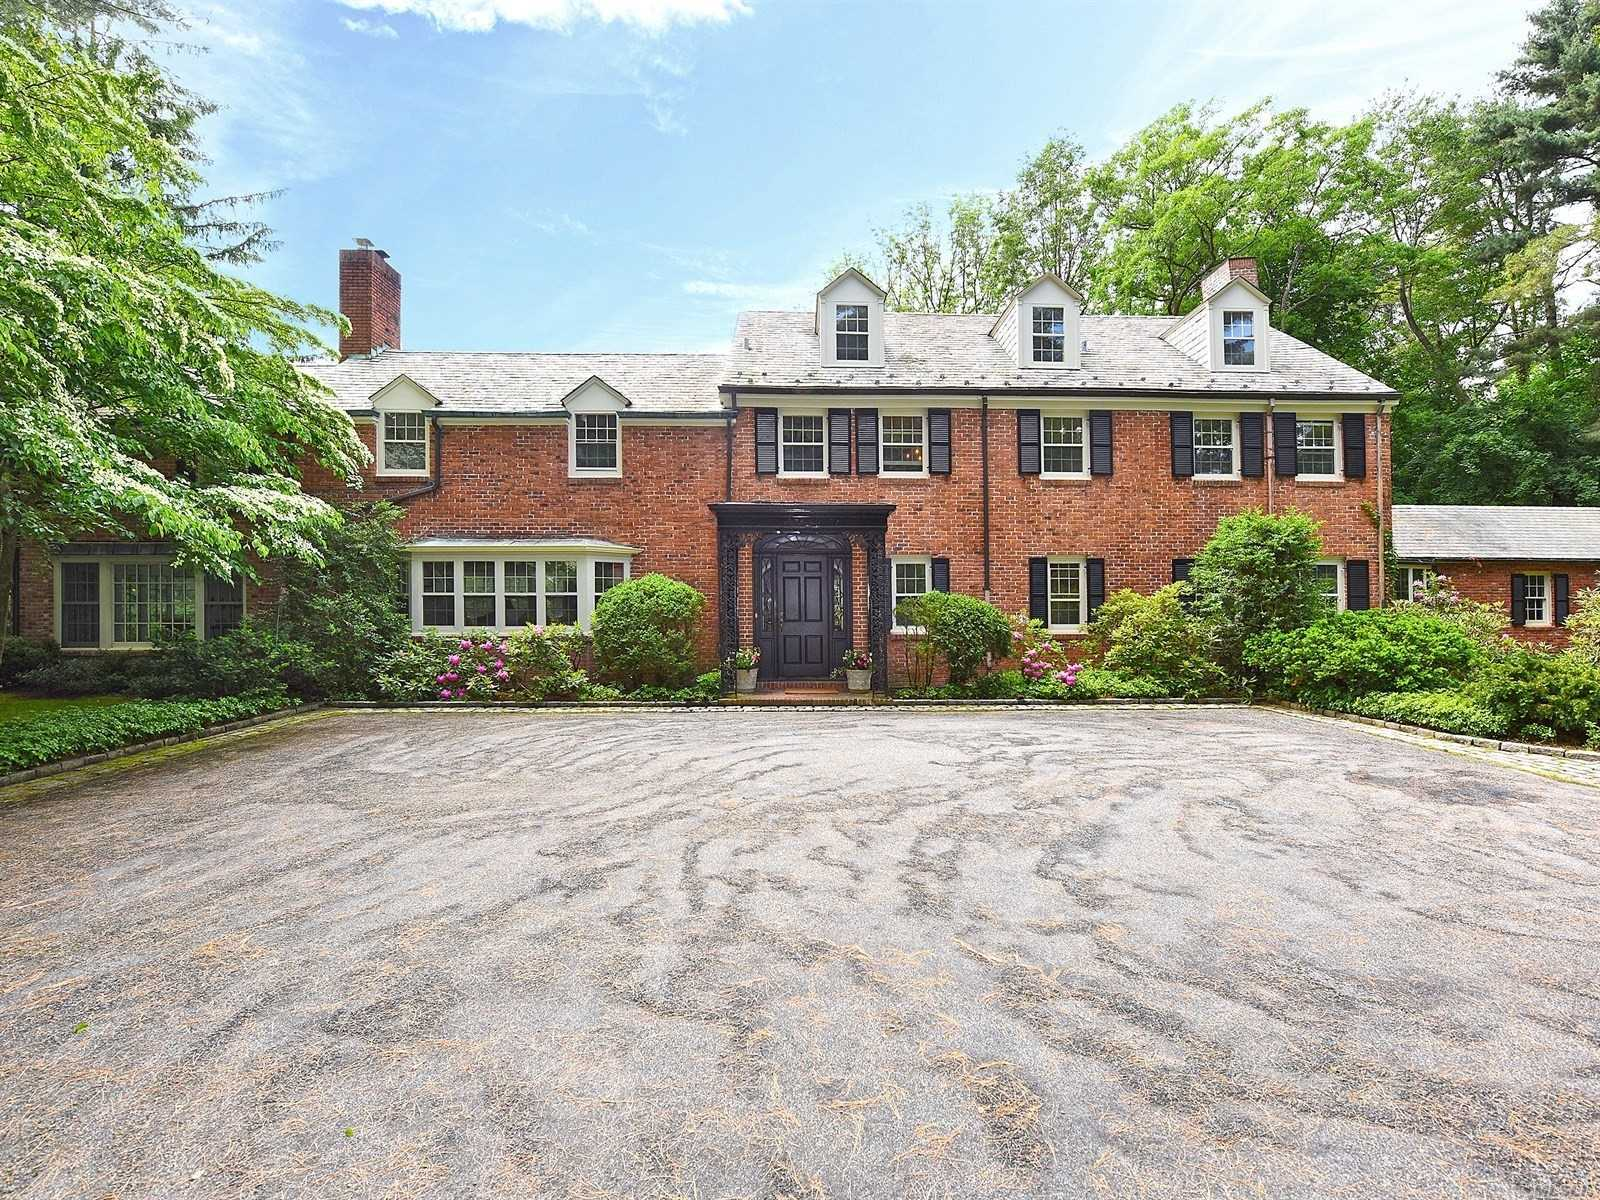 This Elegant Brick Colonial With Slate Roof Is Tucked Away Down A Private Road In An Estate Setting On Over 2 Serene Acres. A Perfect Retreat With Solarium Room That Opens To The Deck Overlooking The In-Ground Gunite Gas Heated Pool And Brick Pool House. Stunning Great Room With Fireplace, Living Room, Office And Den Opens To The Backyard Capturing Bucolic Woodland View. Gas Cooking.